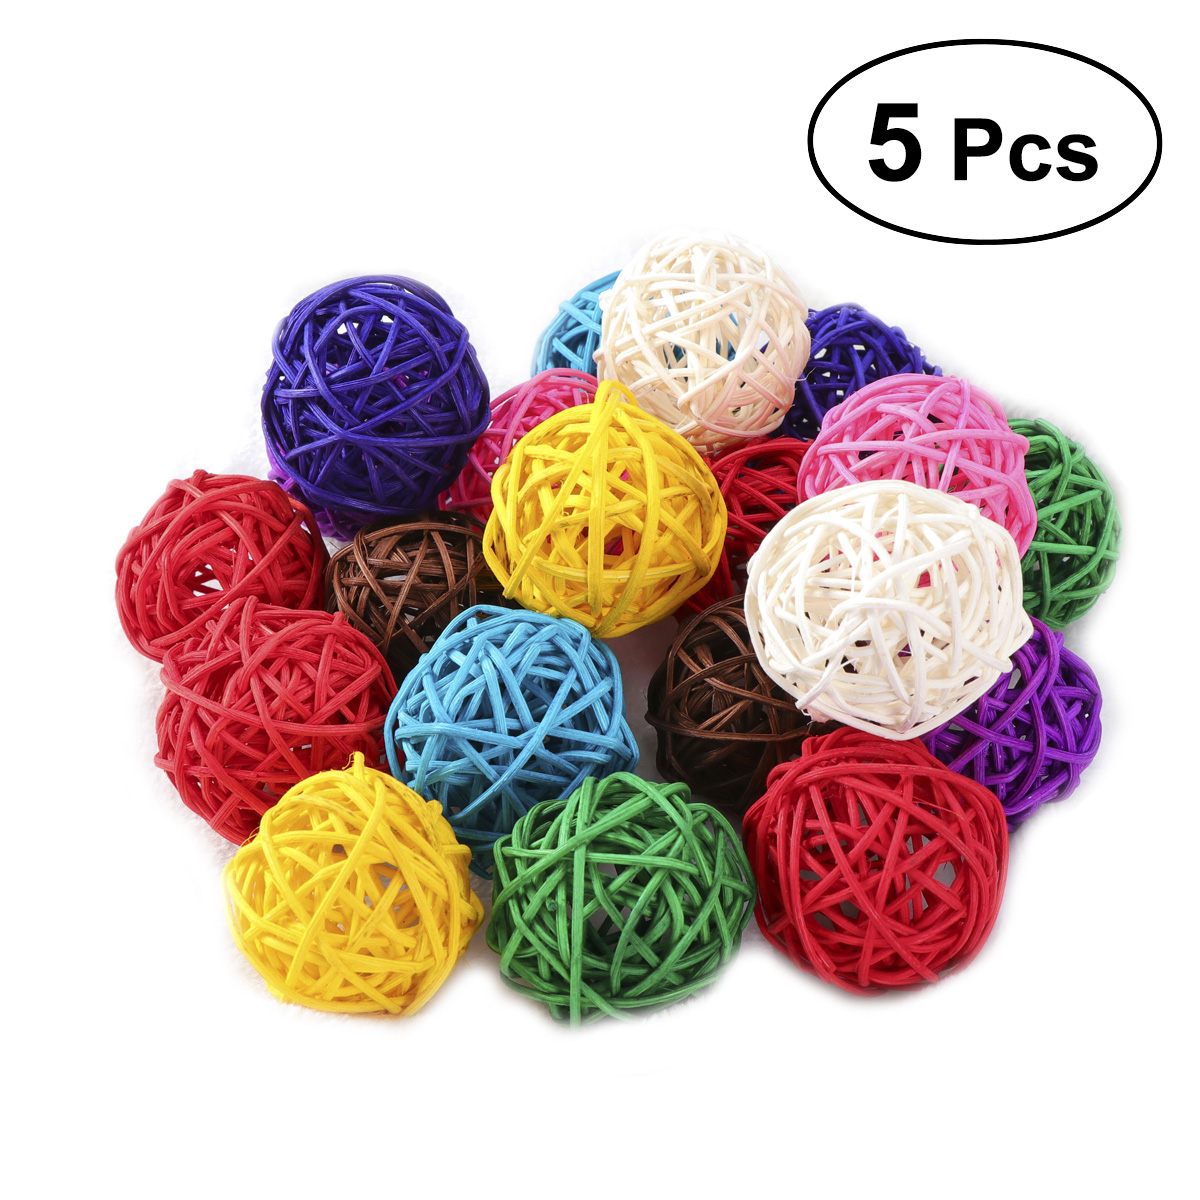 5pcs Wicker Rattan Ball Wedding Christmas Party Hanging Dec Nursery Mobiles 3cm assorted Color Strengthening Sinews And Bones